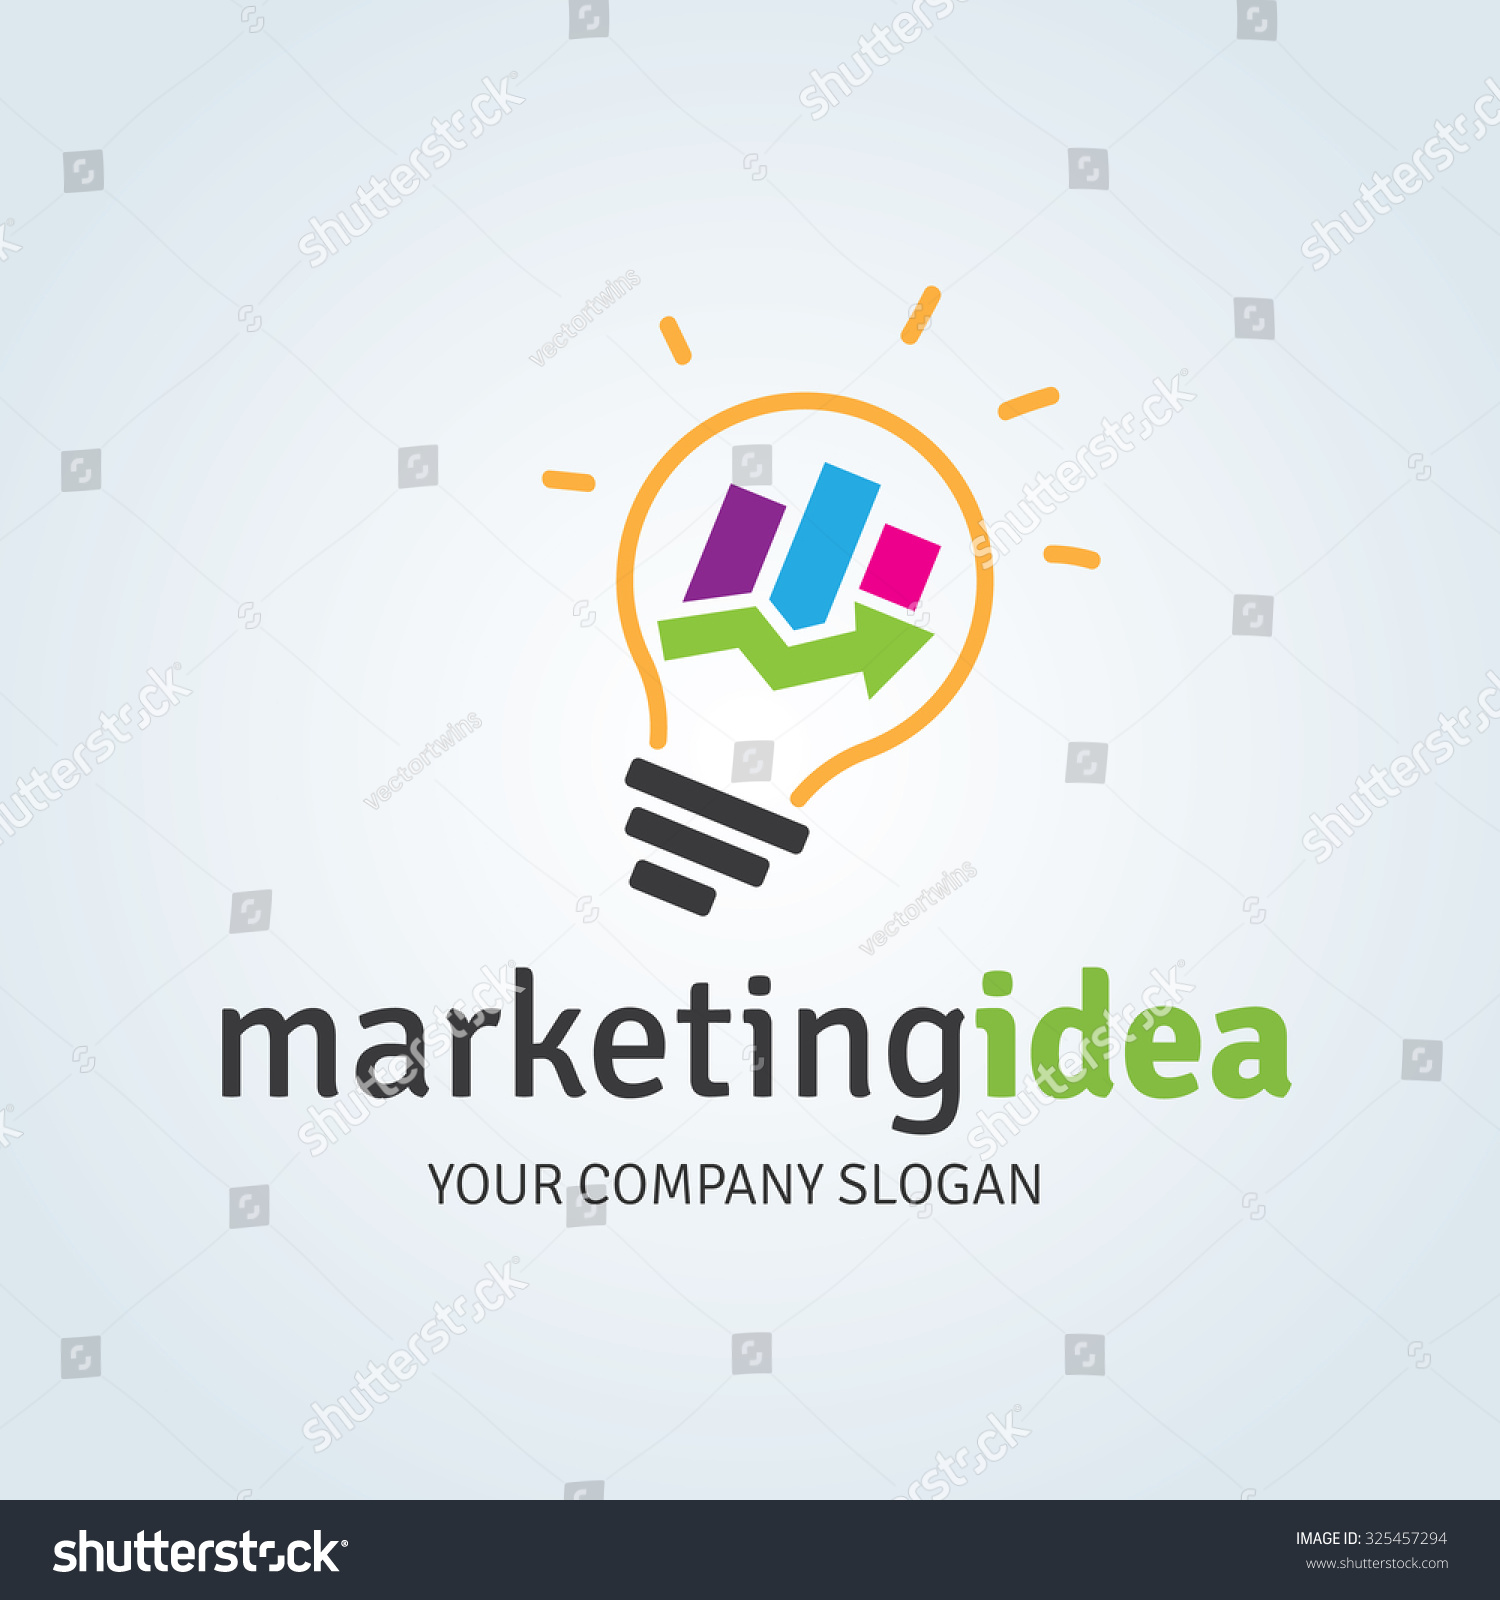 Marketing idea logo template stock vector 325457294 shutterstock marketing idea logo template altavistaventures Choice Image